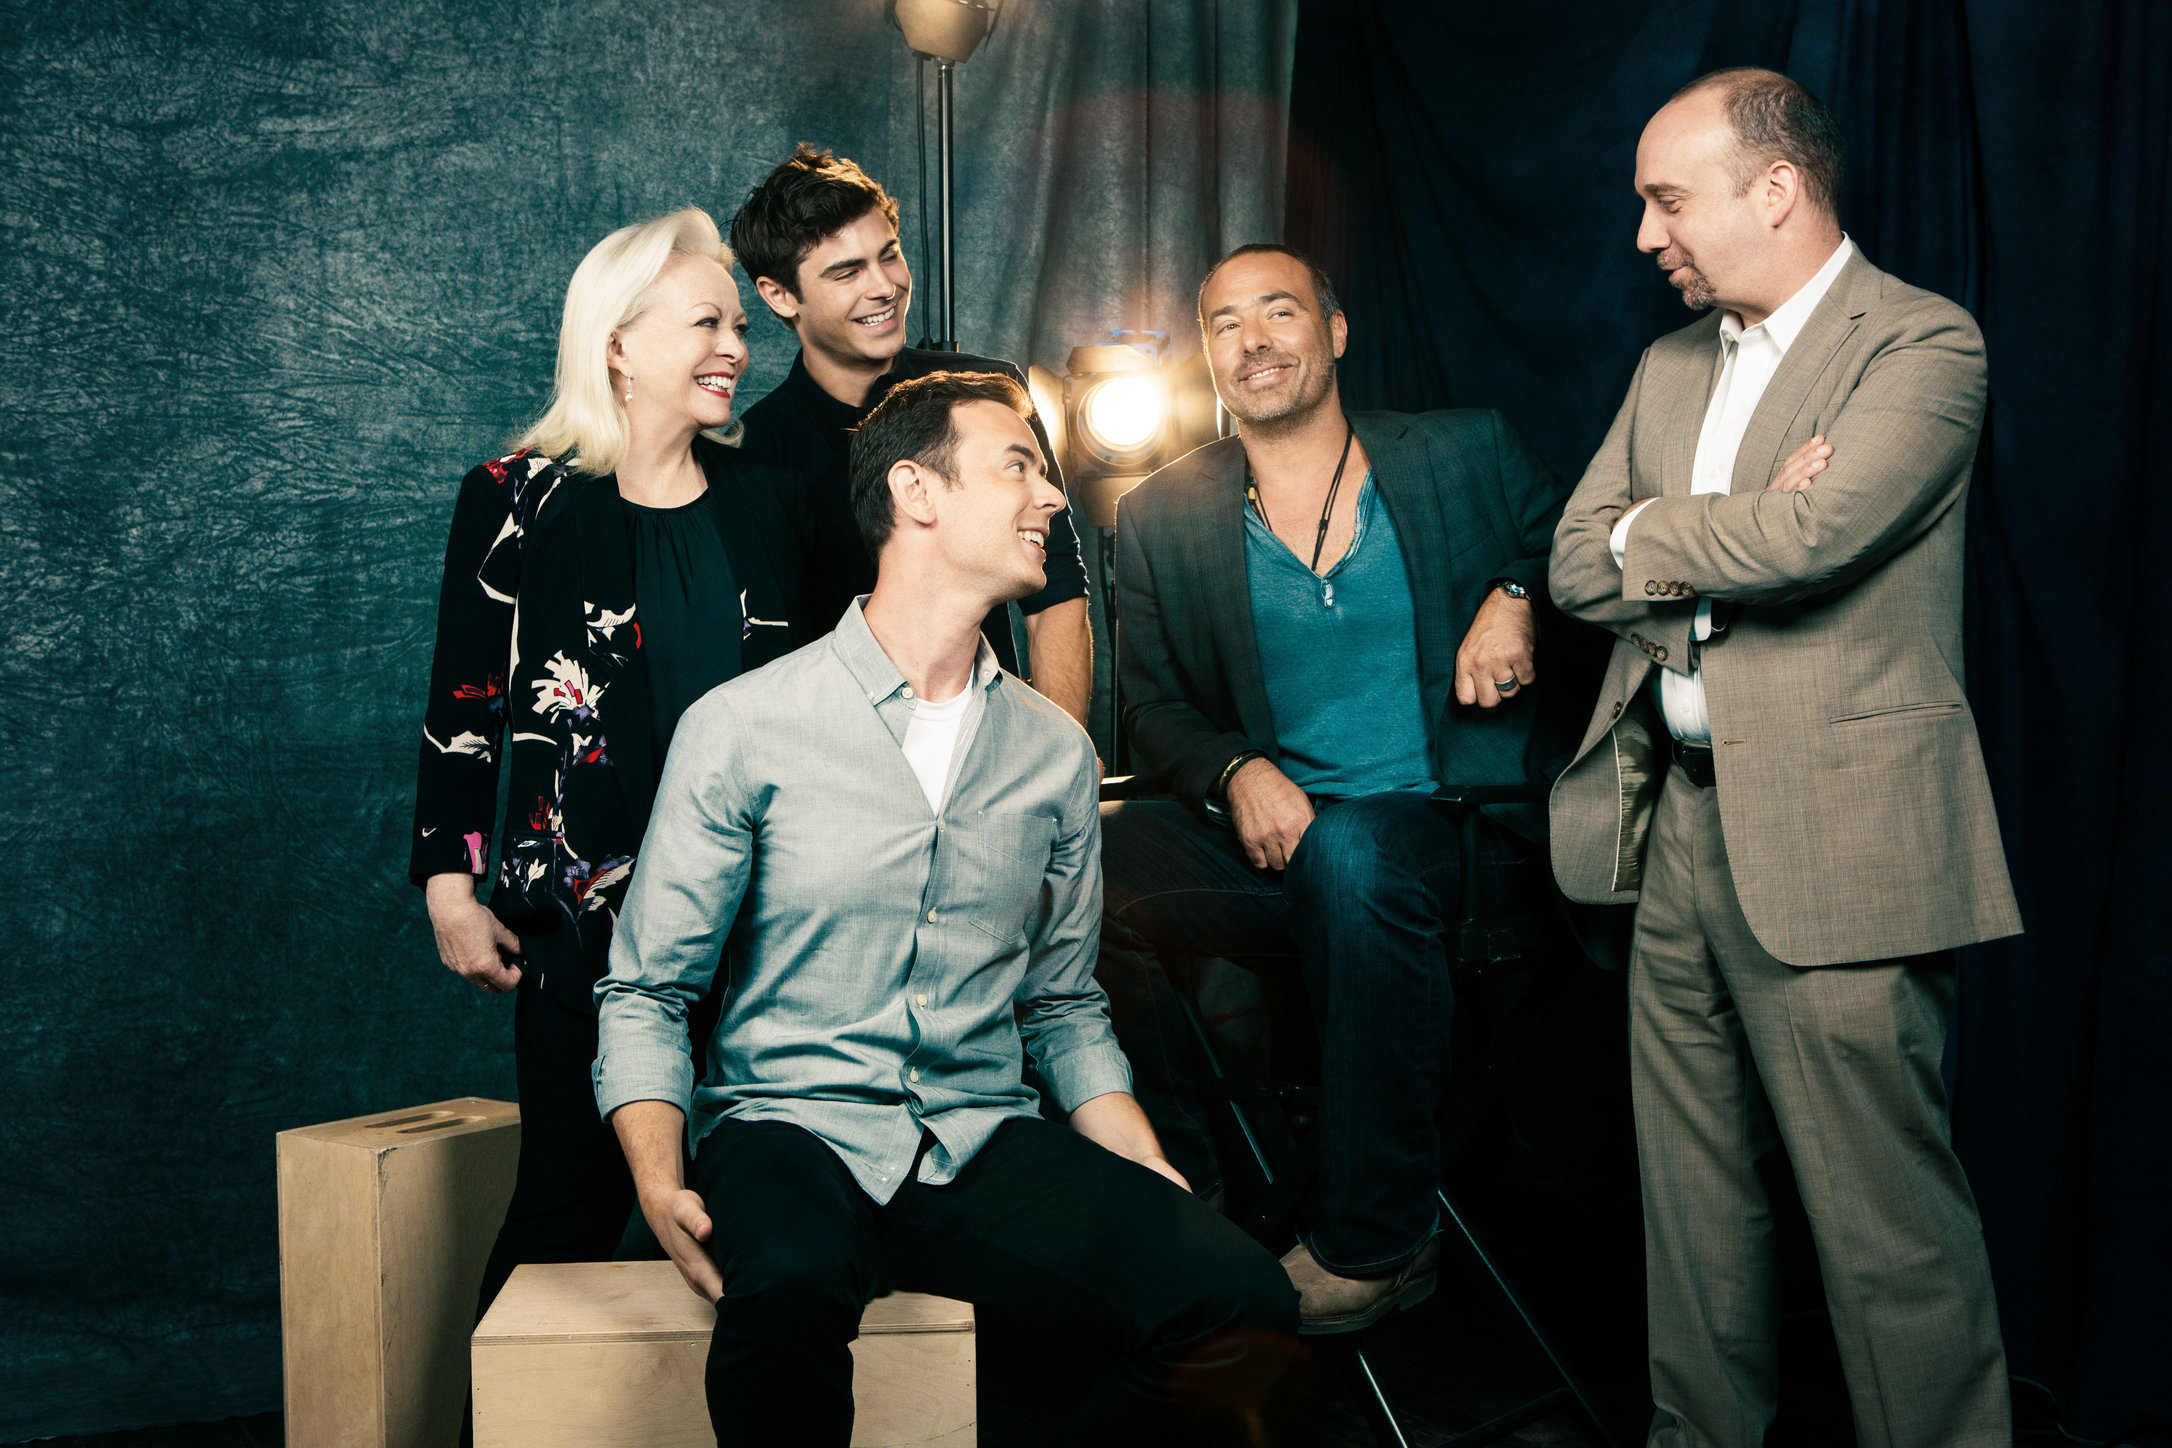 peter landesman, director, jacki weaver, zac efron, colin hanks, paul giamatti, actors